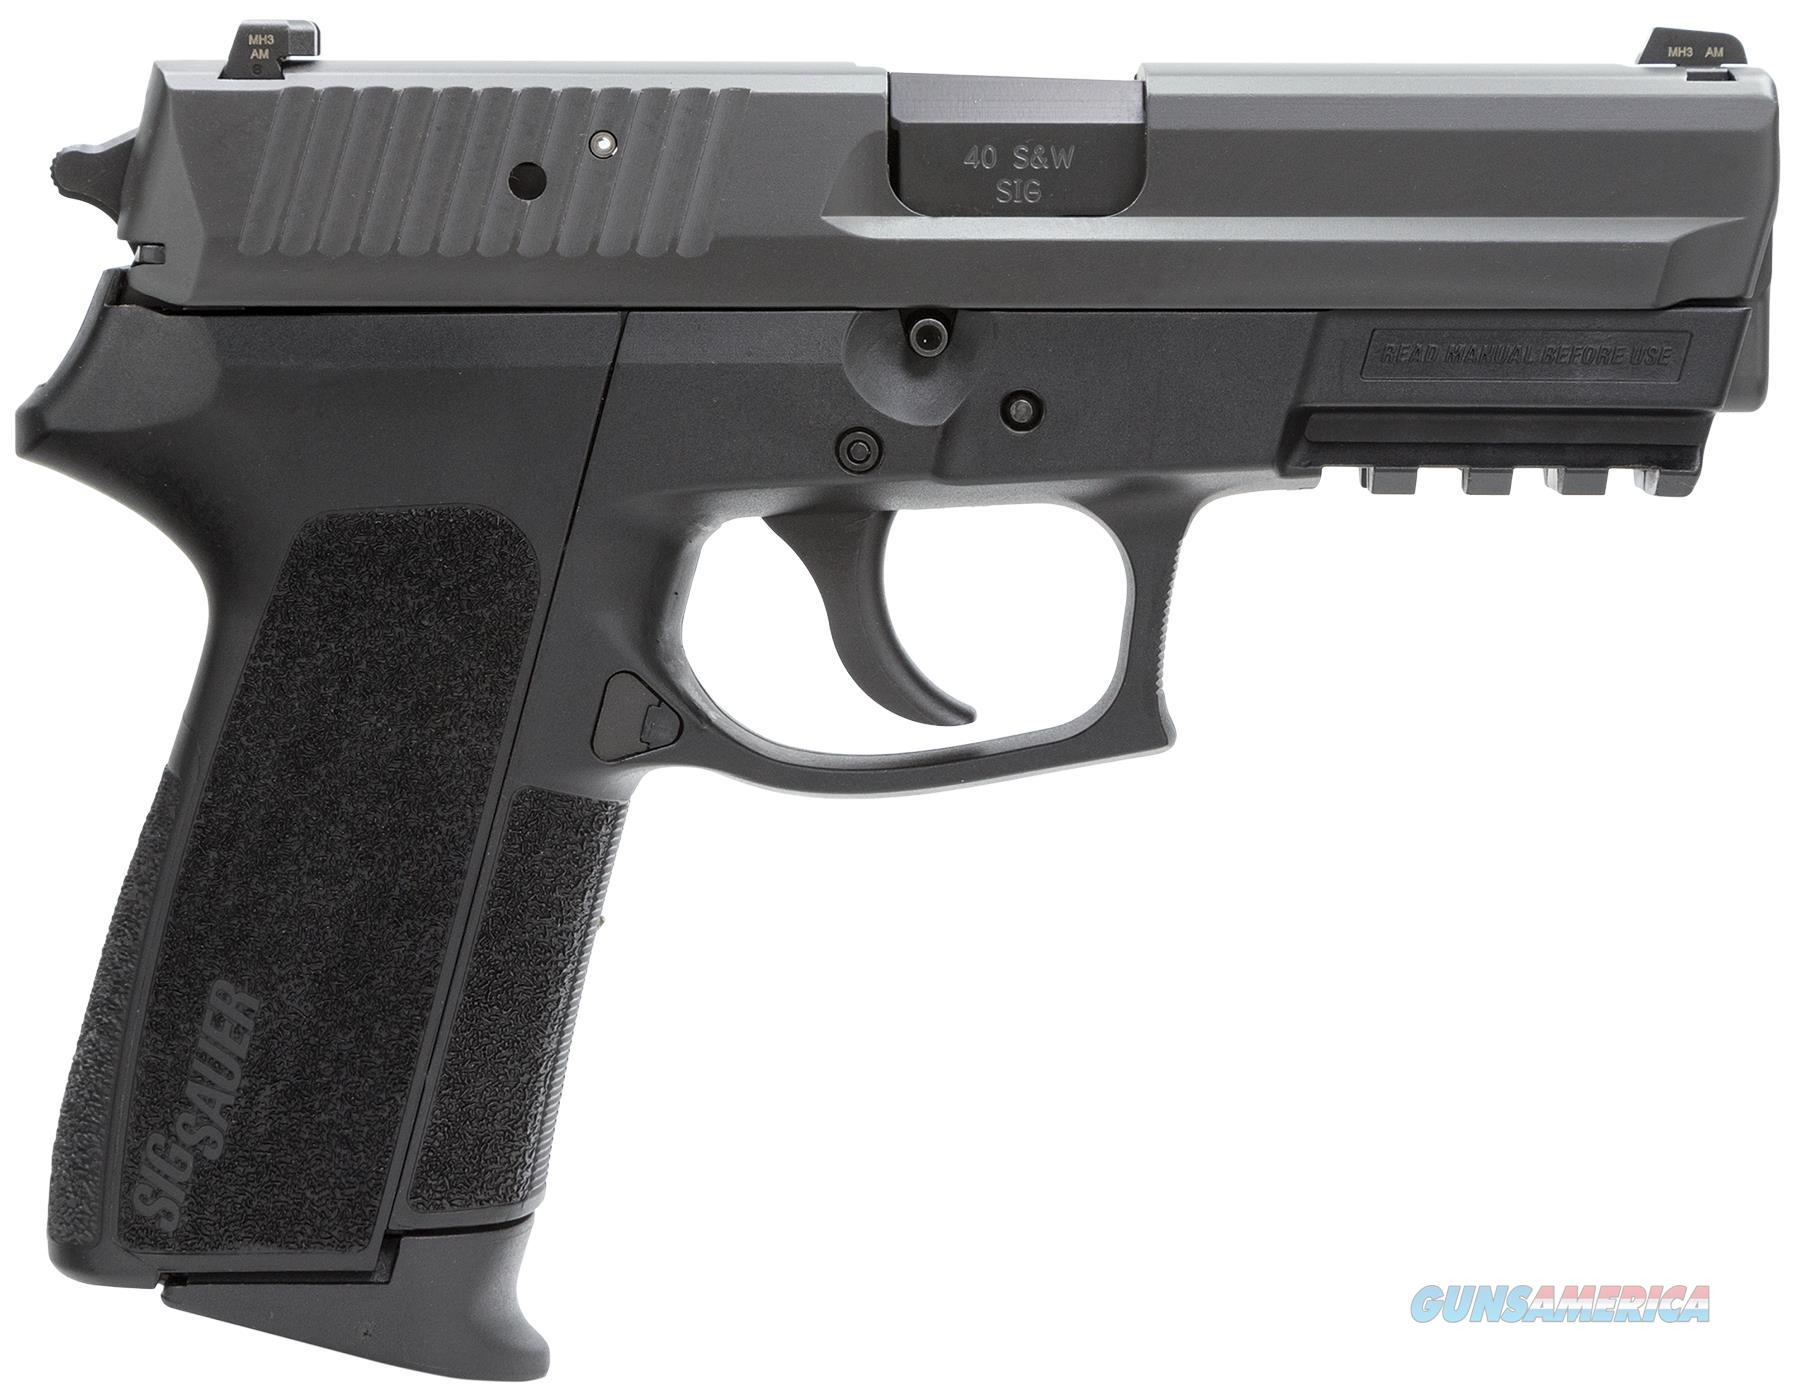 """Sig Sauer Sp202240bssc Sp2022 Full Size *Ca Compliant* Single/Double 40 Smith & Wesson (S&W) 3.9"""" 10+1 Black Polymer Grip Black Nitron Stainless Steel SP2022-40-BSS-CA  Guns > Pistols > S Misc Pistols"""